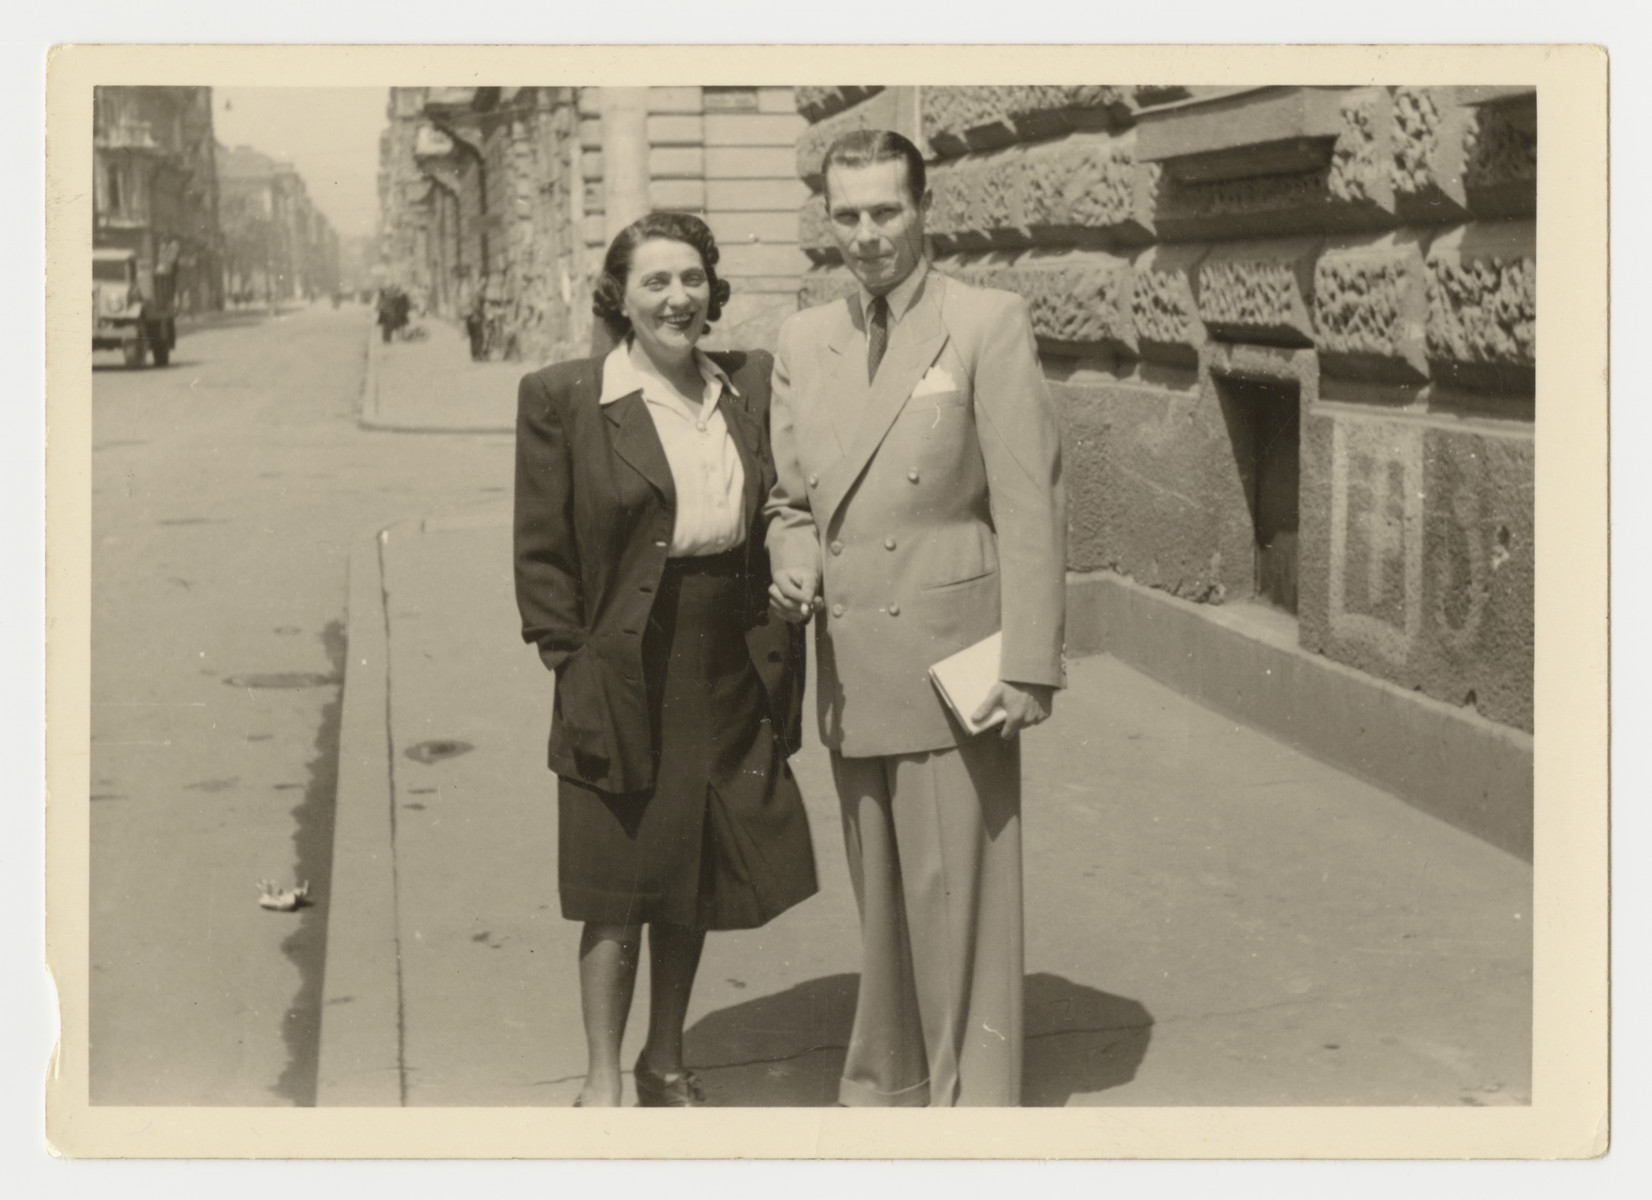 Sara Koranyi and her son Erwin pose on a street in Budapest..